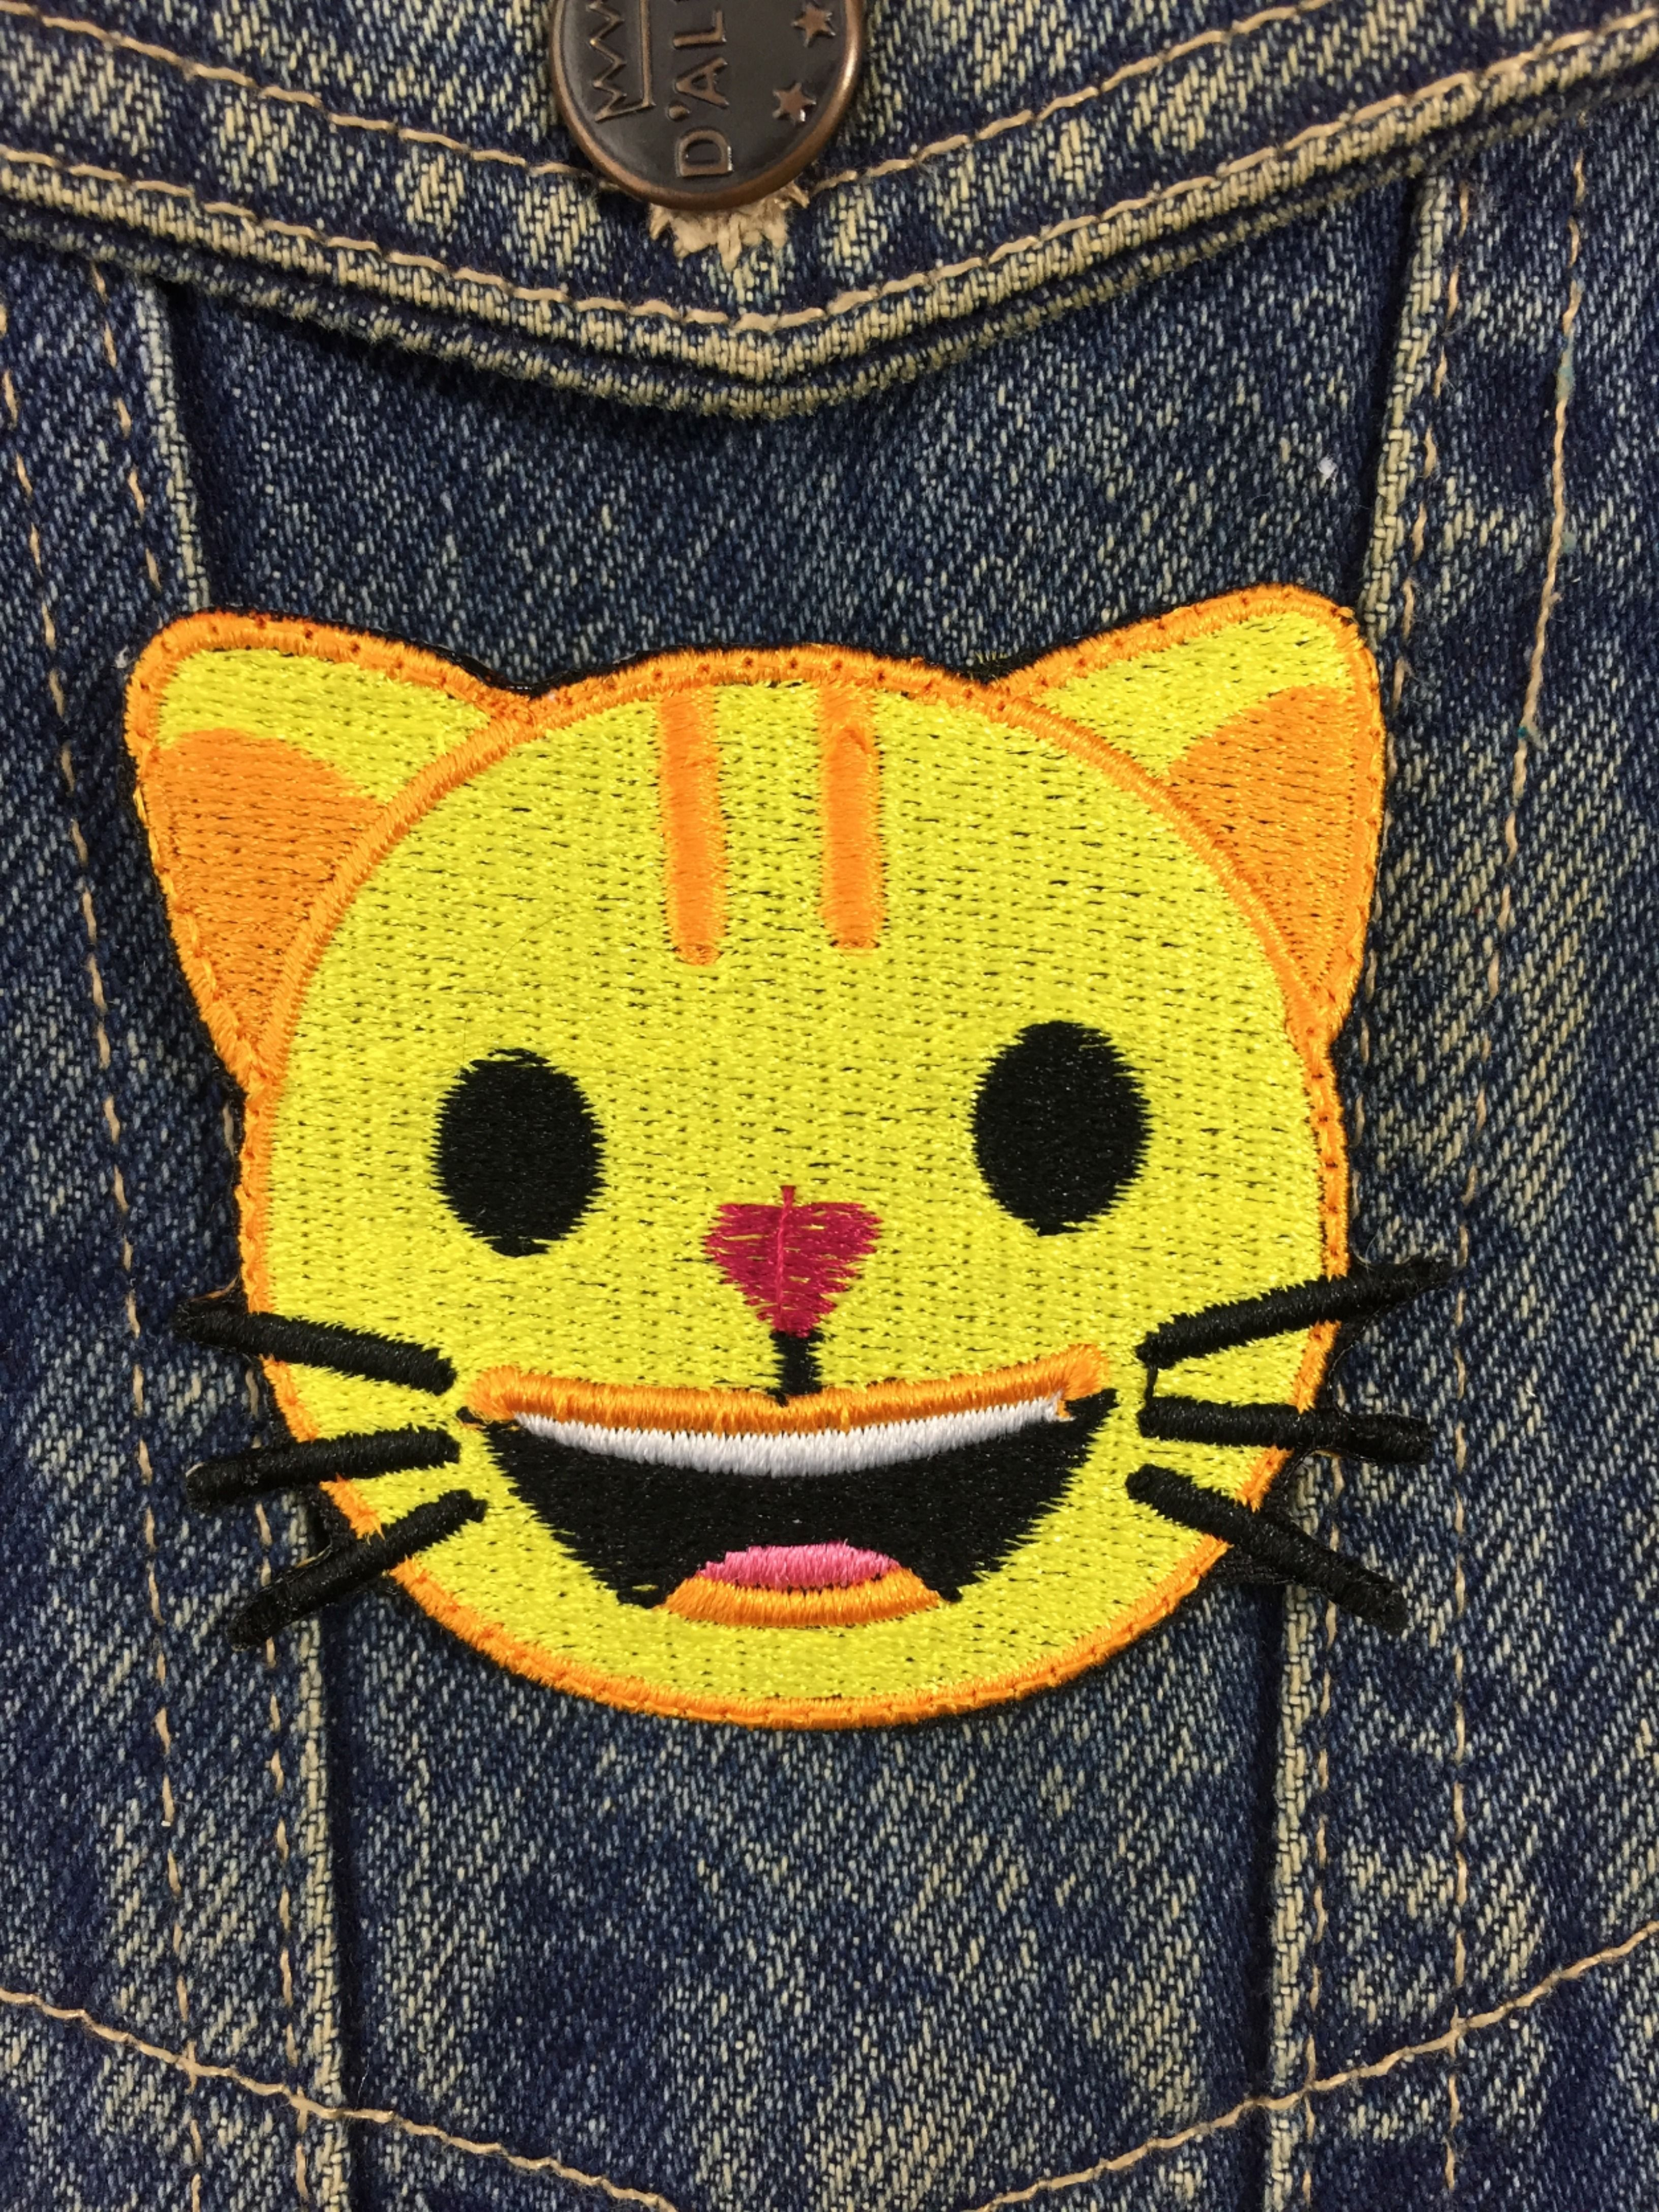 Cat emoji Patch, Embroidery applique, sew on patch jeans t